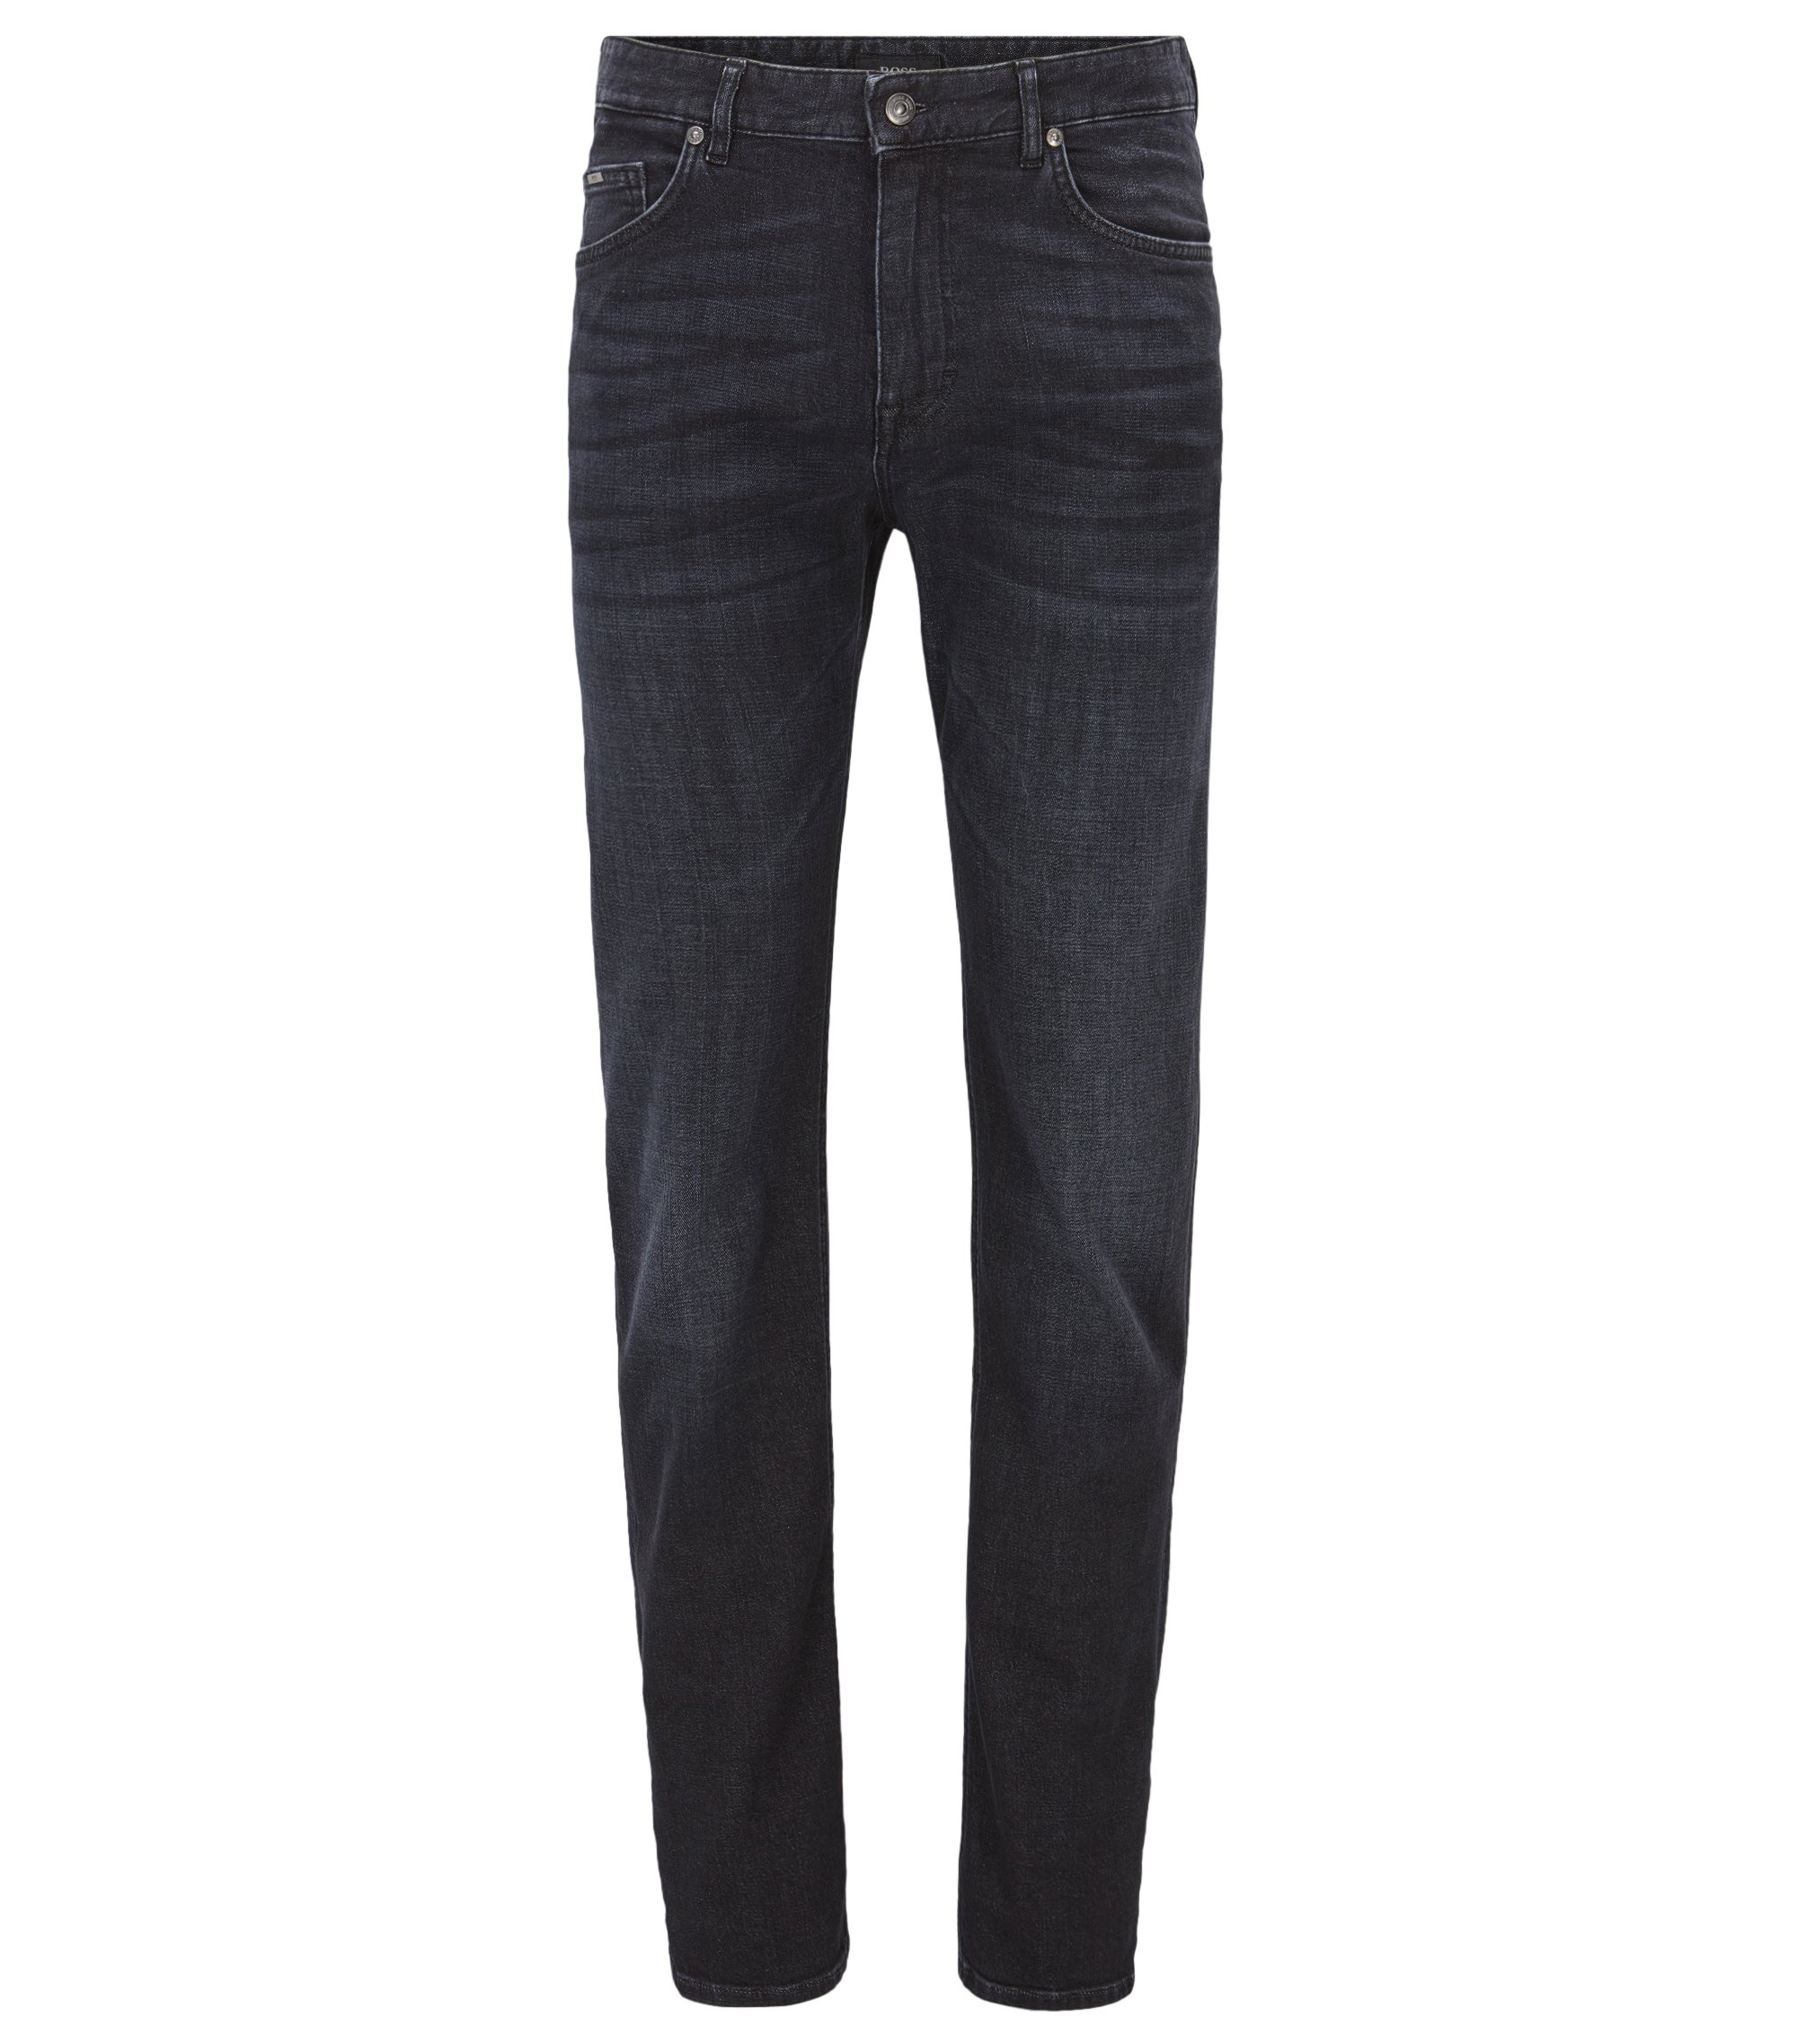 Jeans Relaxed Fit en denim au toucher cachemire, Anthracite